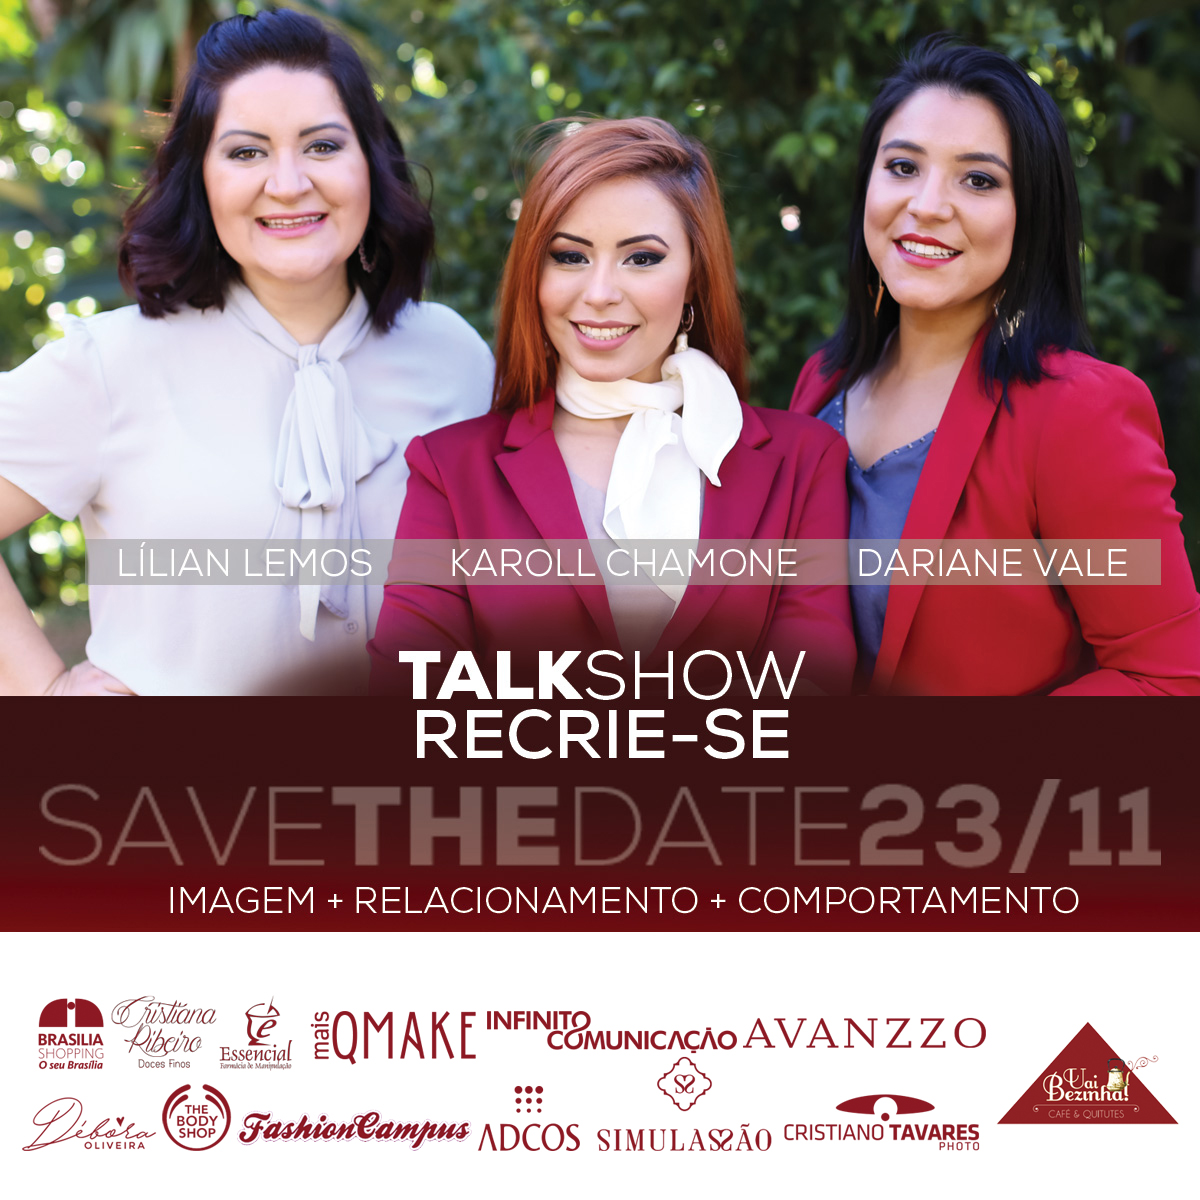 TalkShow Recrie-se